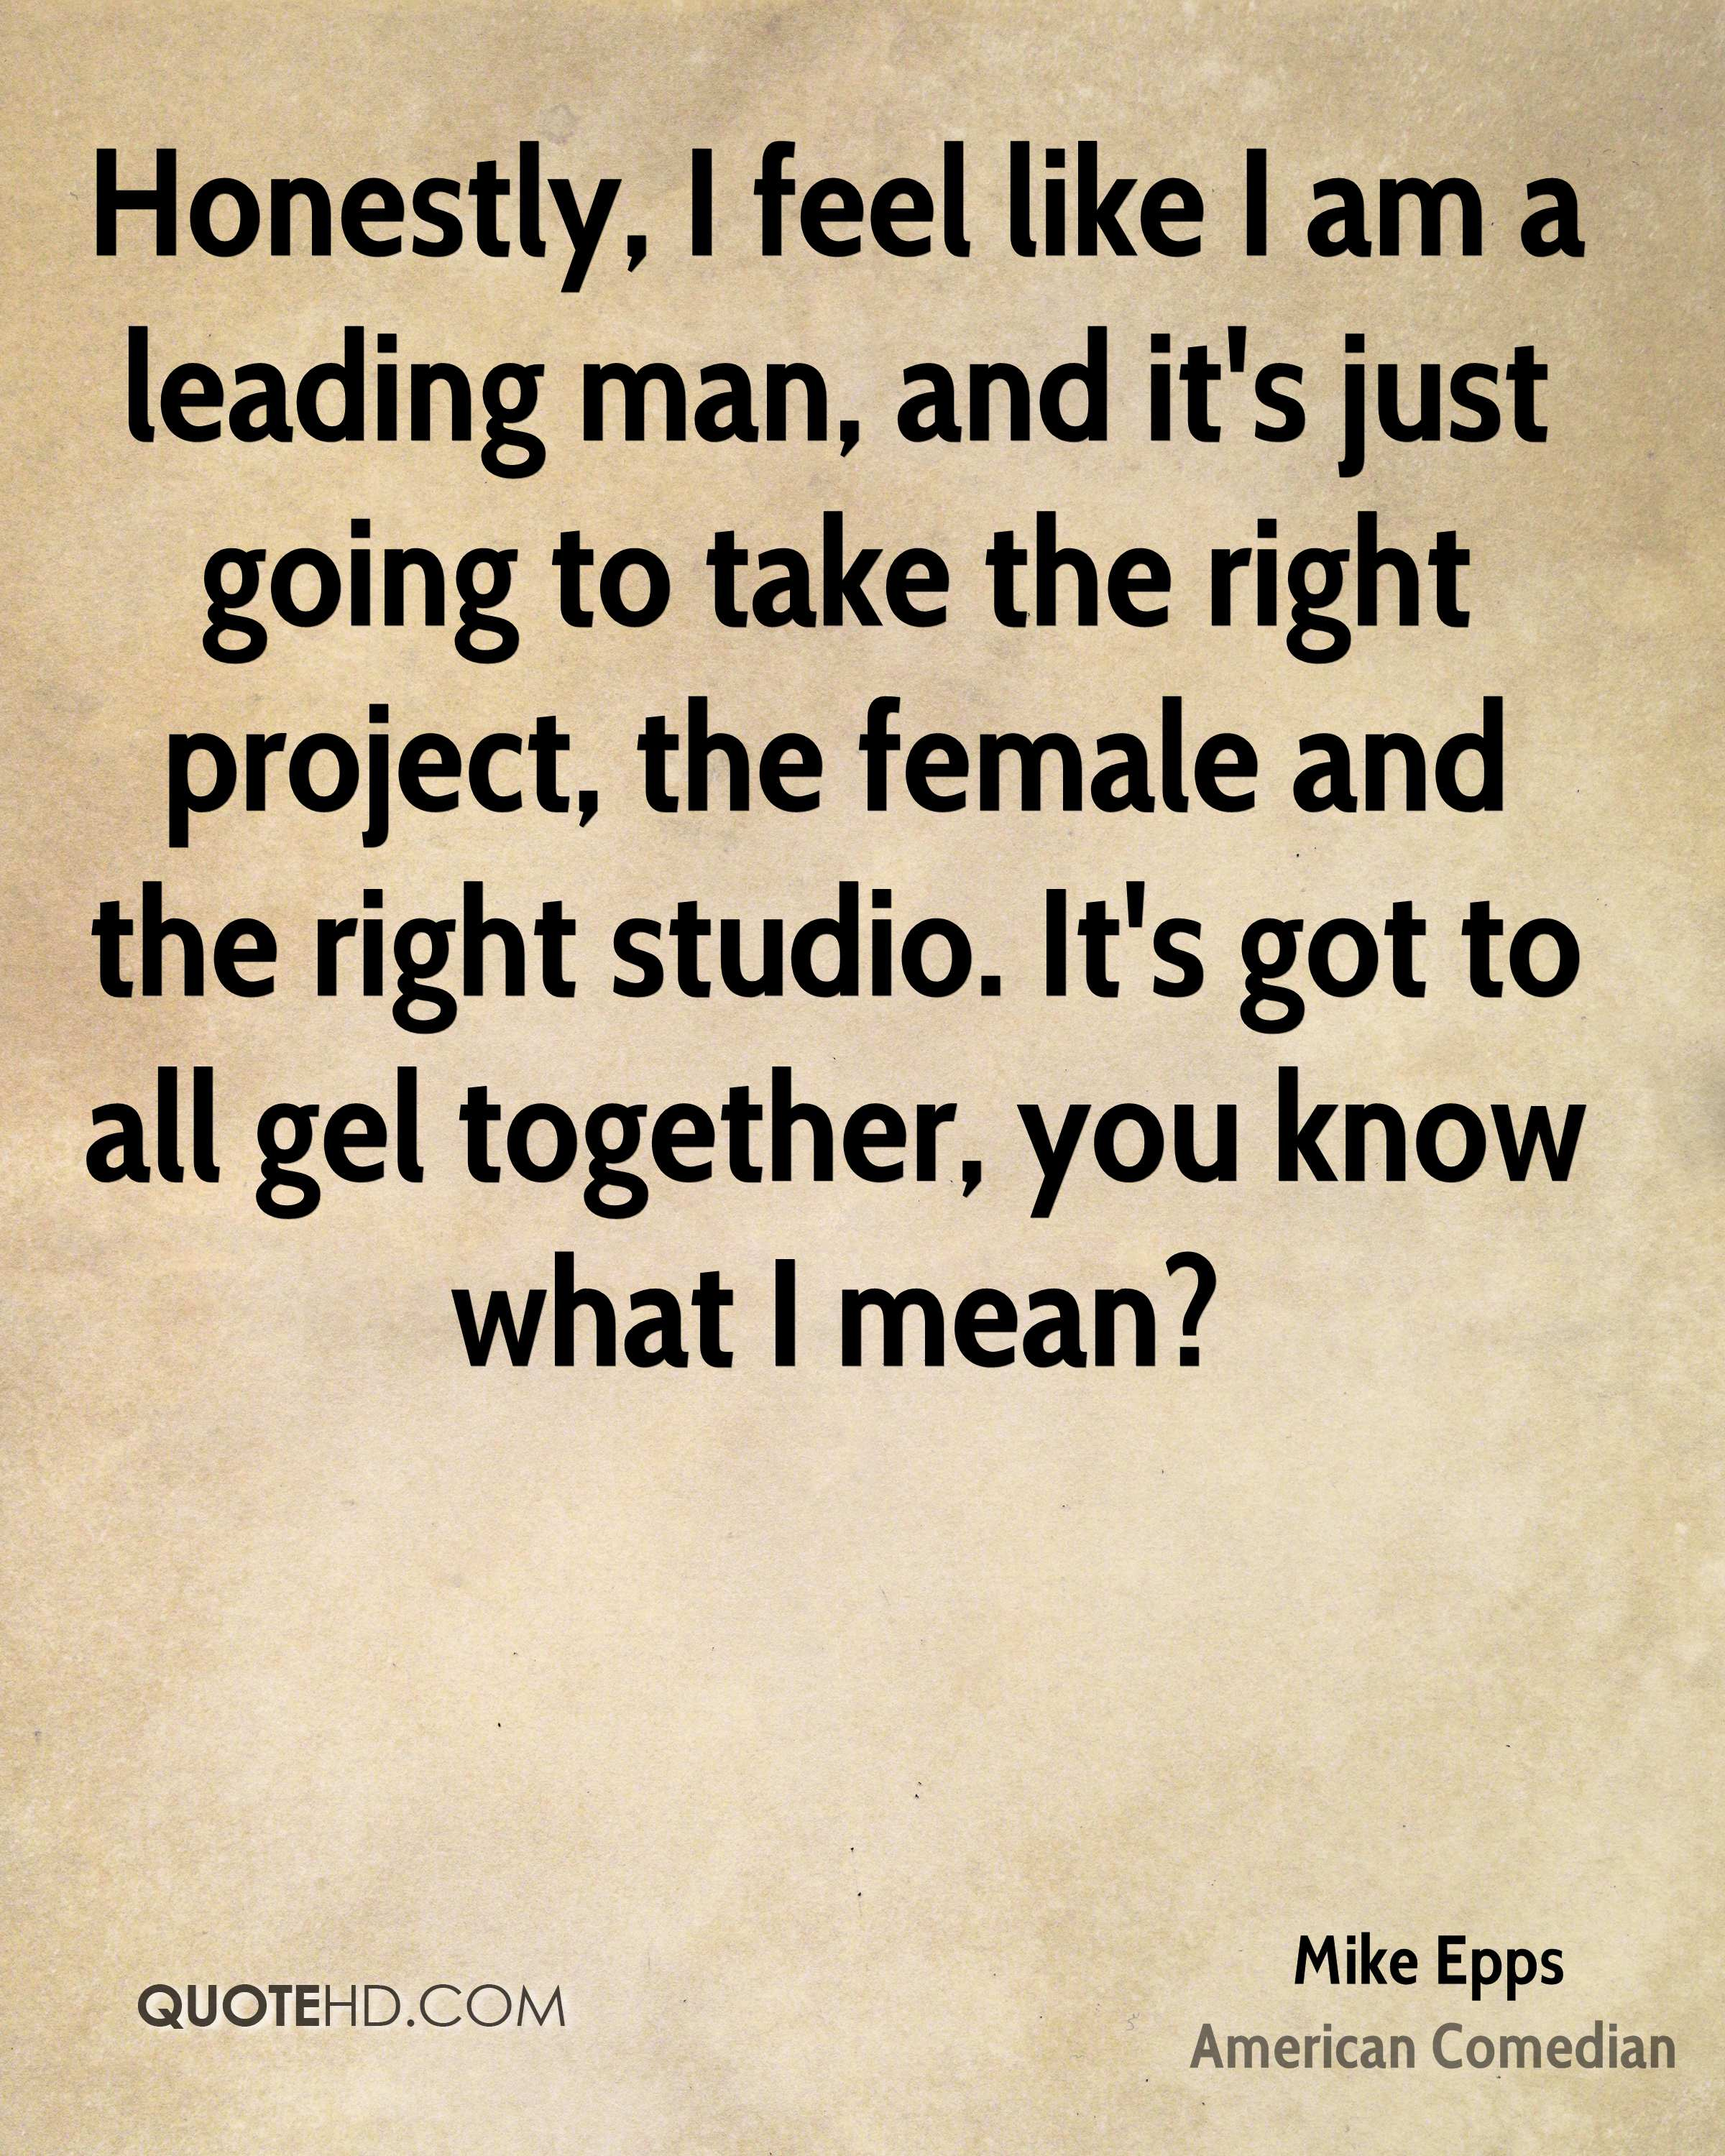 Honestly, I feel like I am a leading man, and it's just going to take the right project, the female and the right studio. It's got to all gel together, you know what I mean?